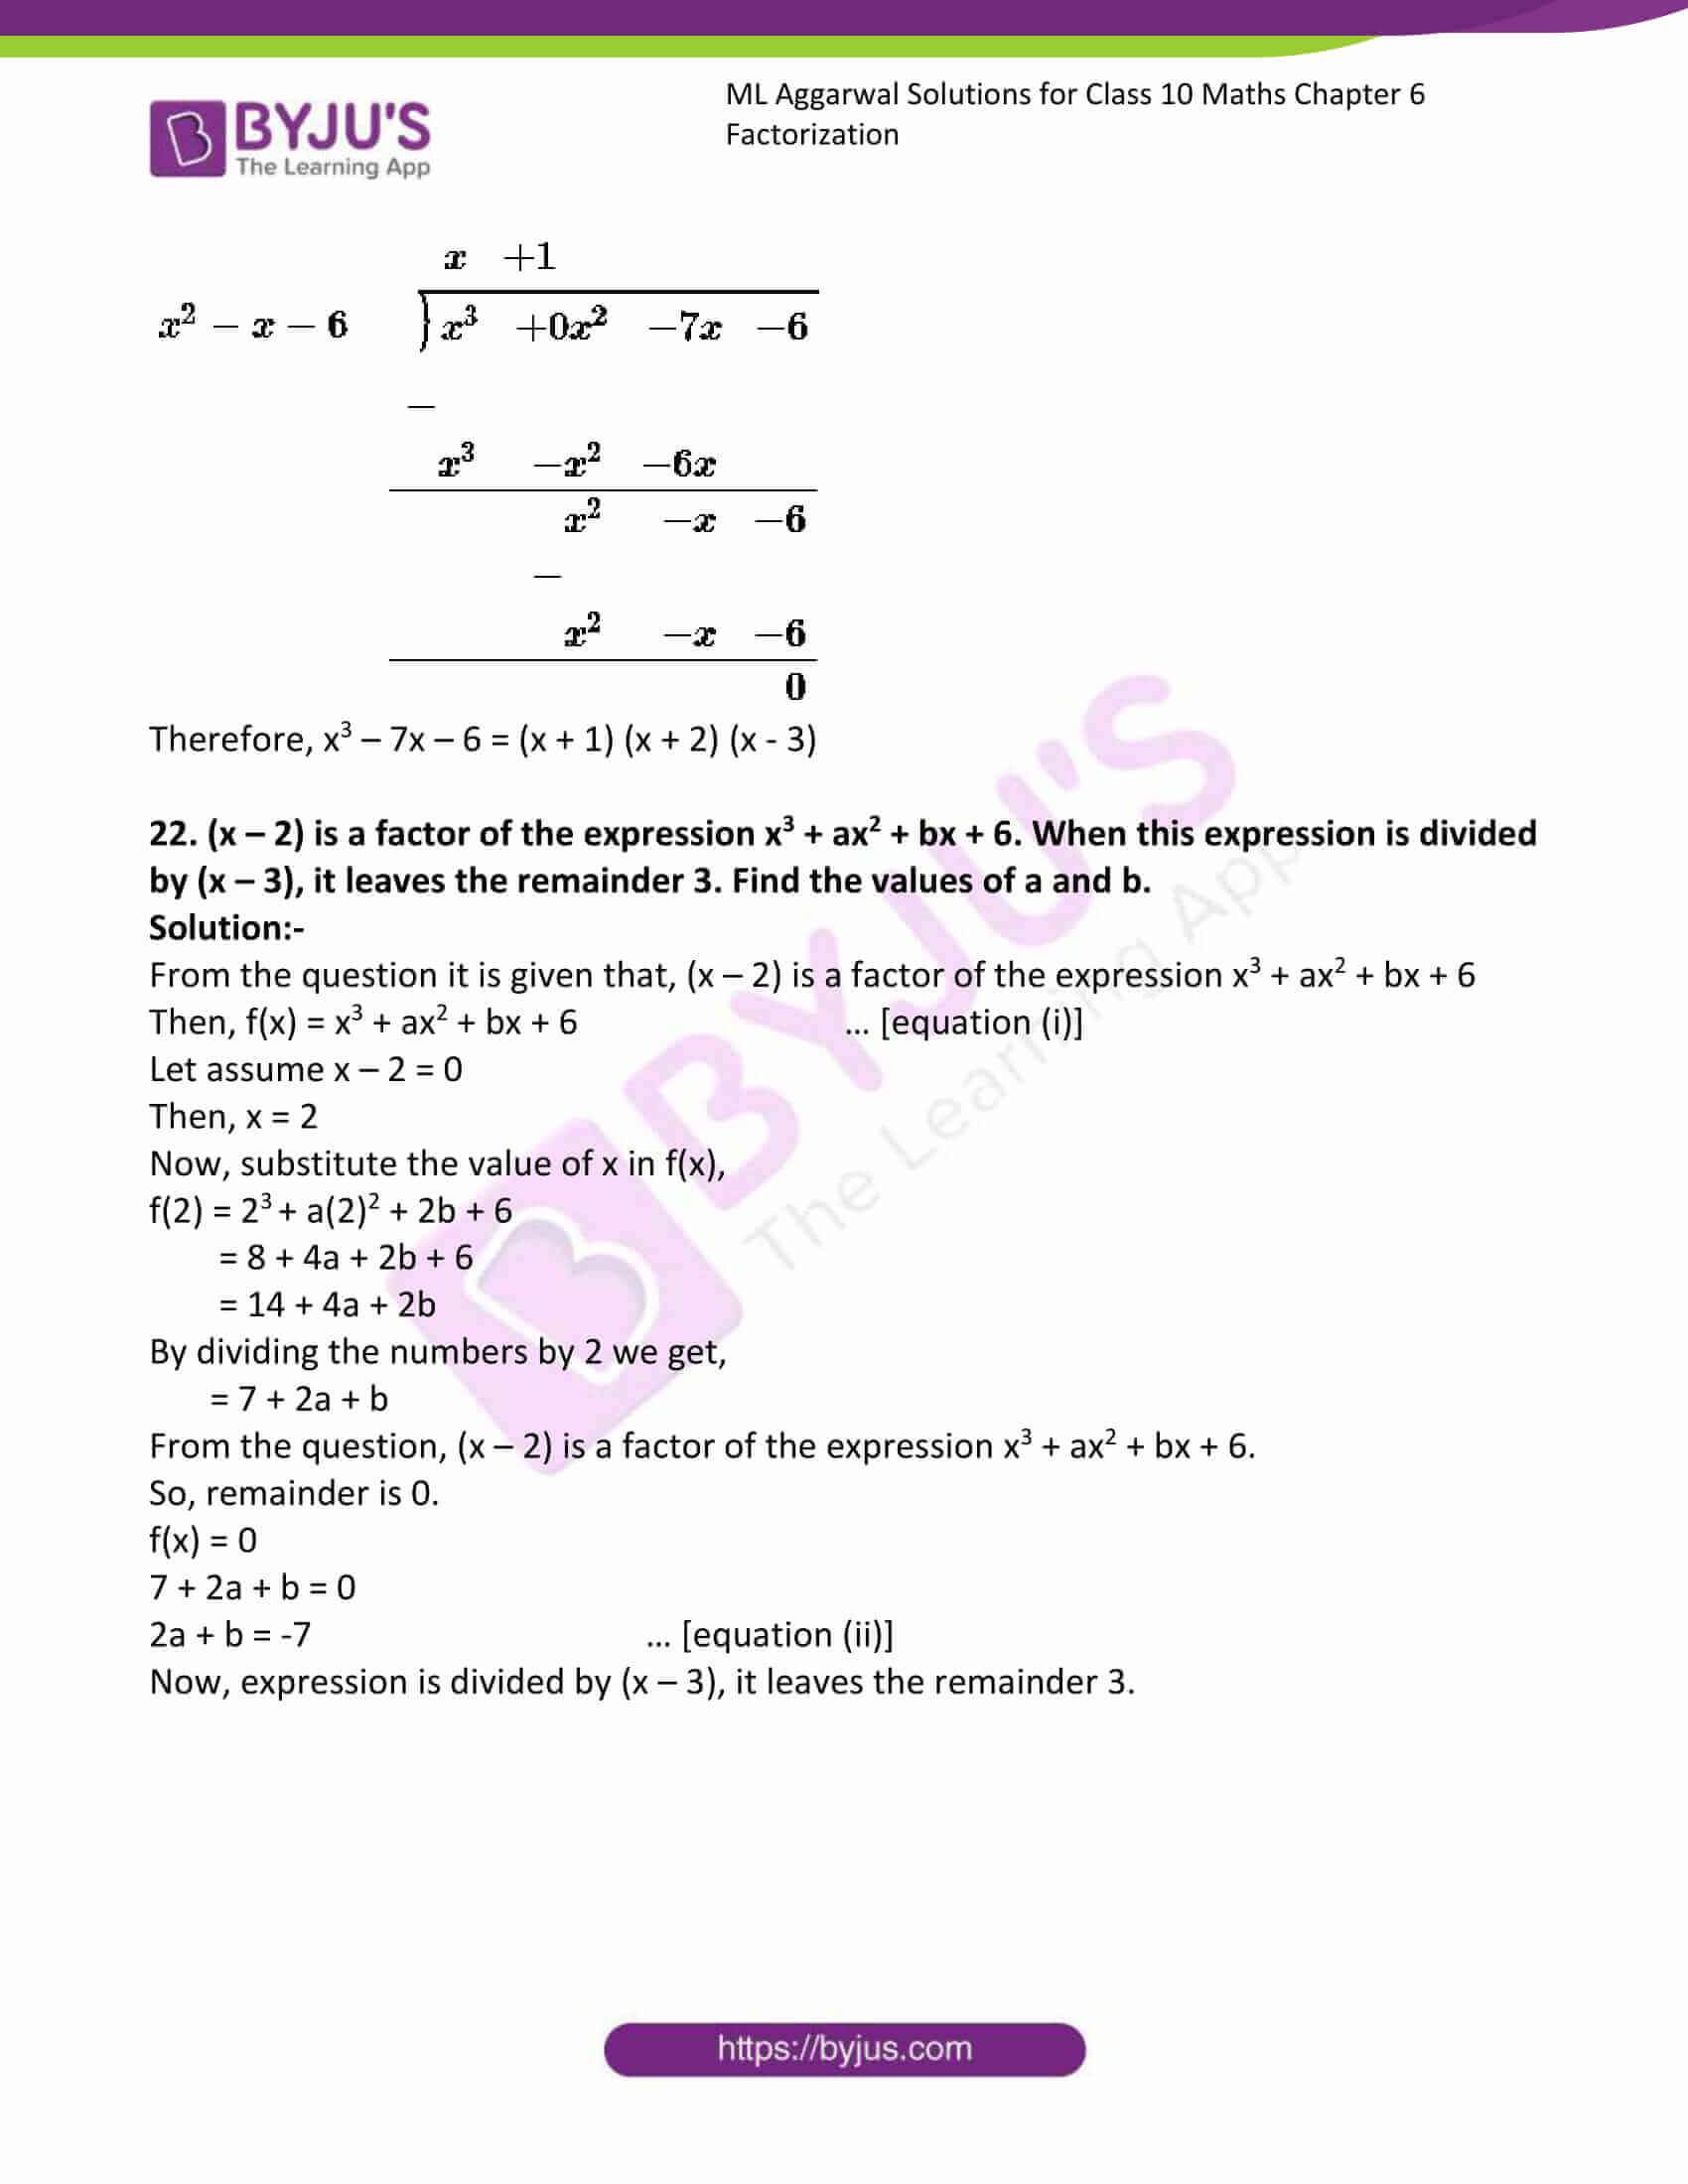 ml aggarwal solutions class 10 maths chapter 6 23